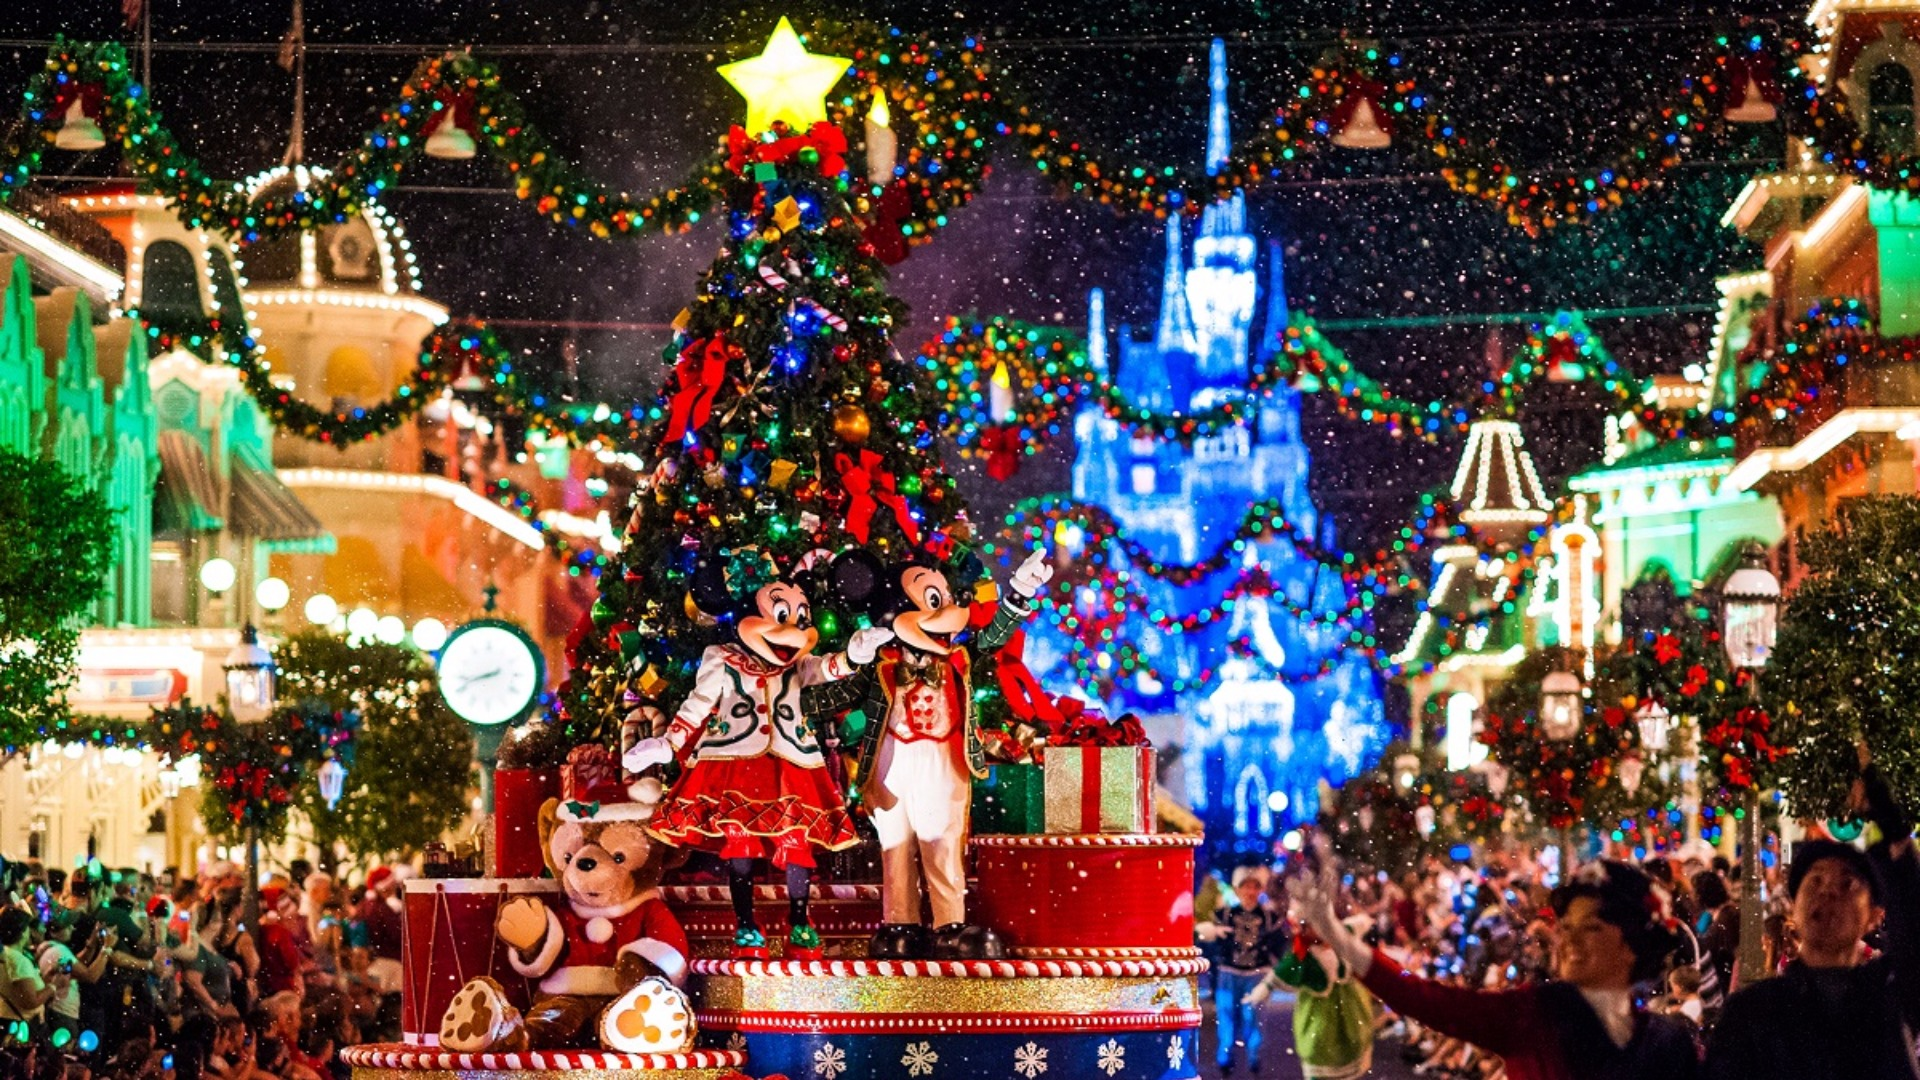 disneyland park the christmas holiday at its best